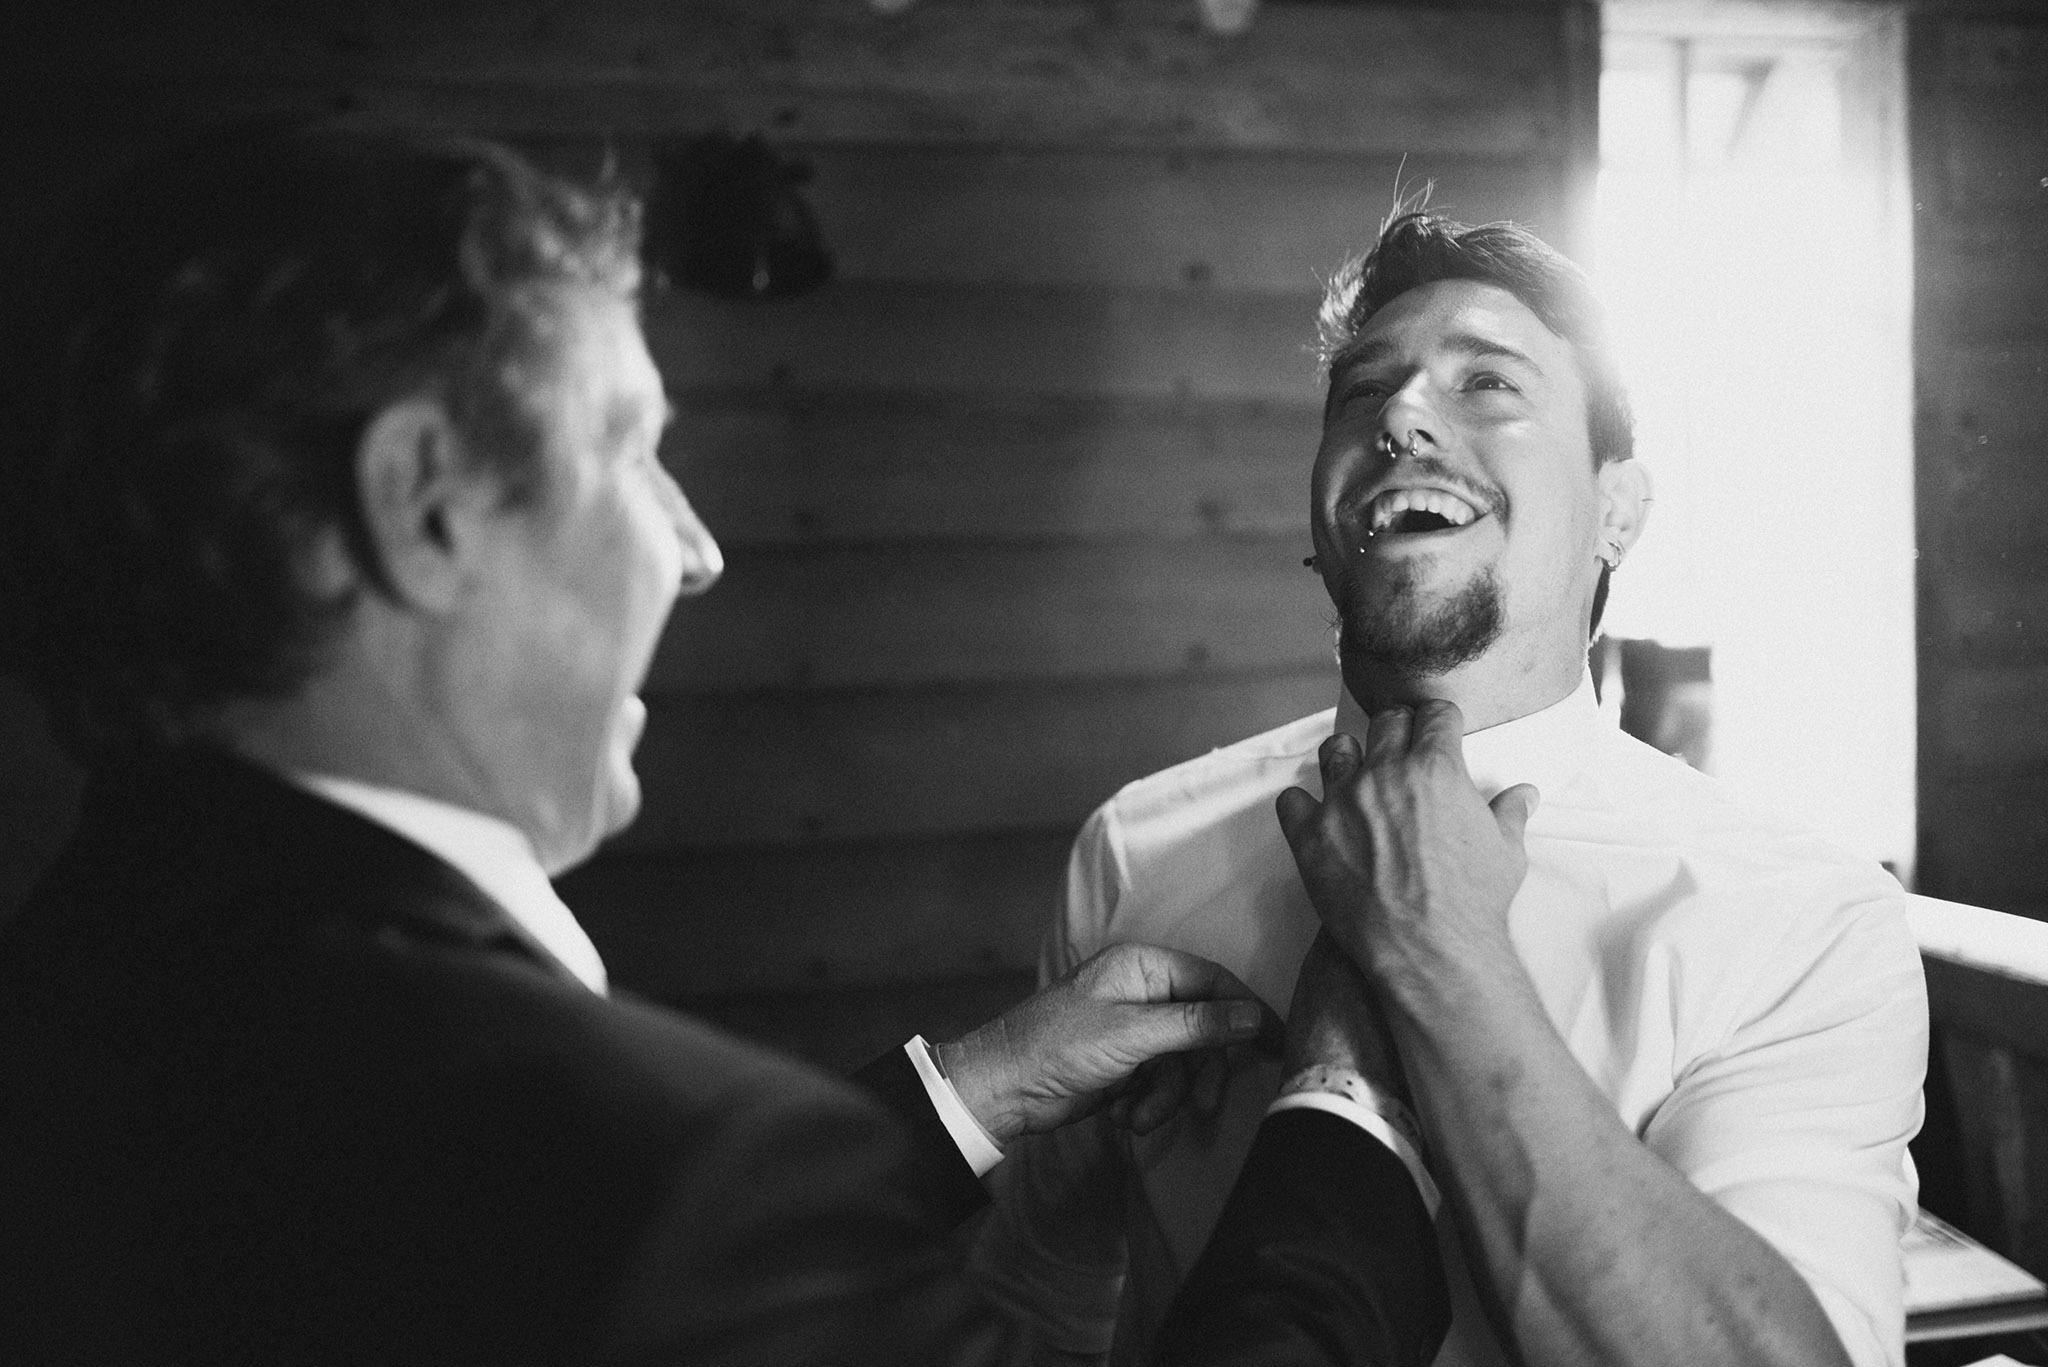 groom-tie-scott-stockwell-photography-wedding-photographer.jpg